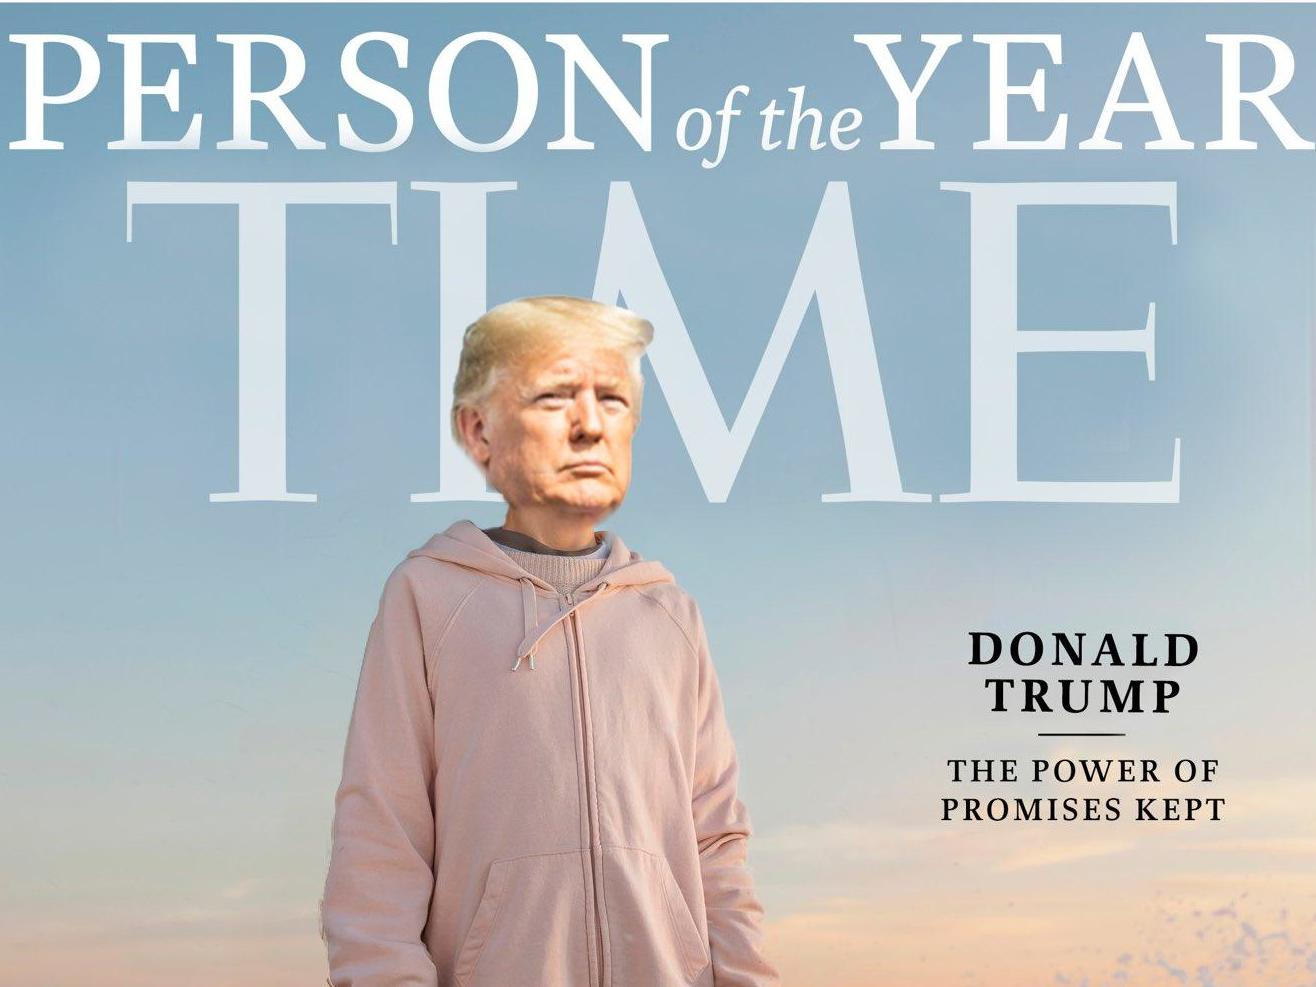 Trump's team Photoshops his face over Greta Thunberg's on Time Person of the Year cover